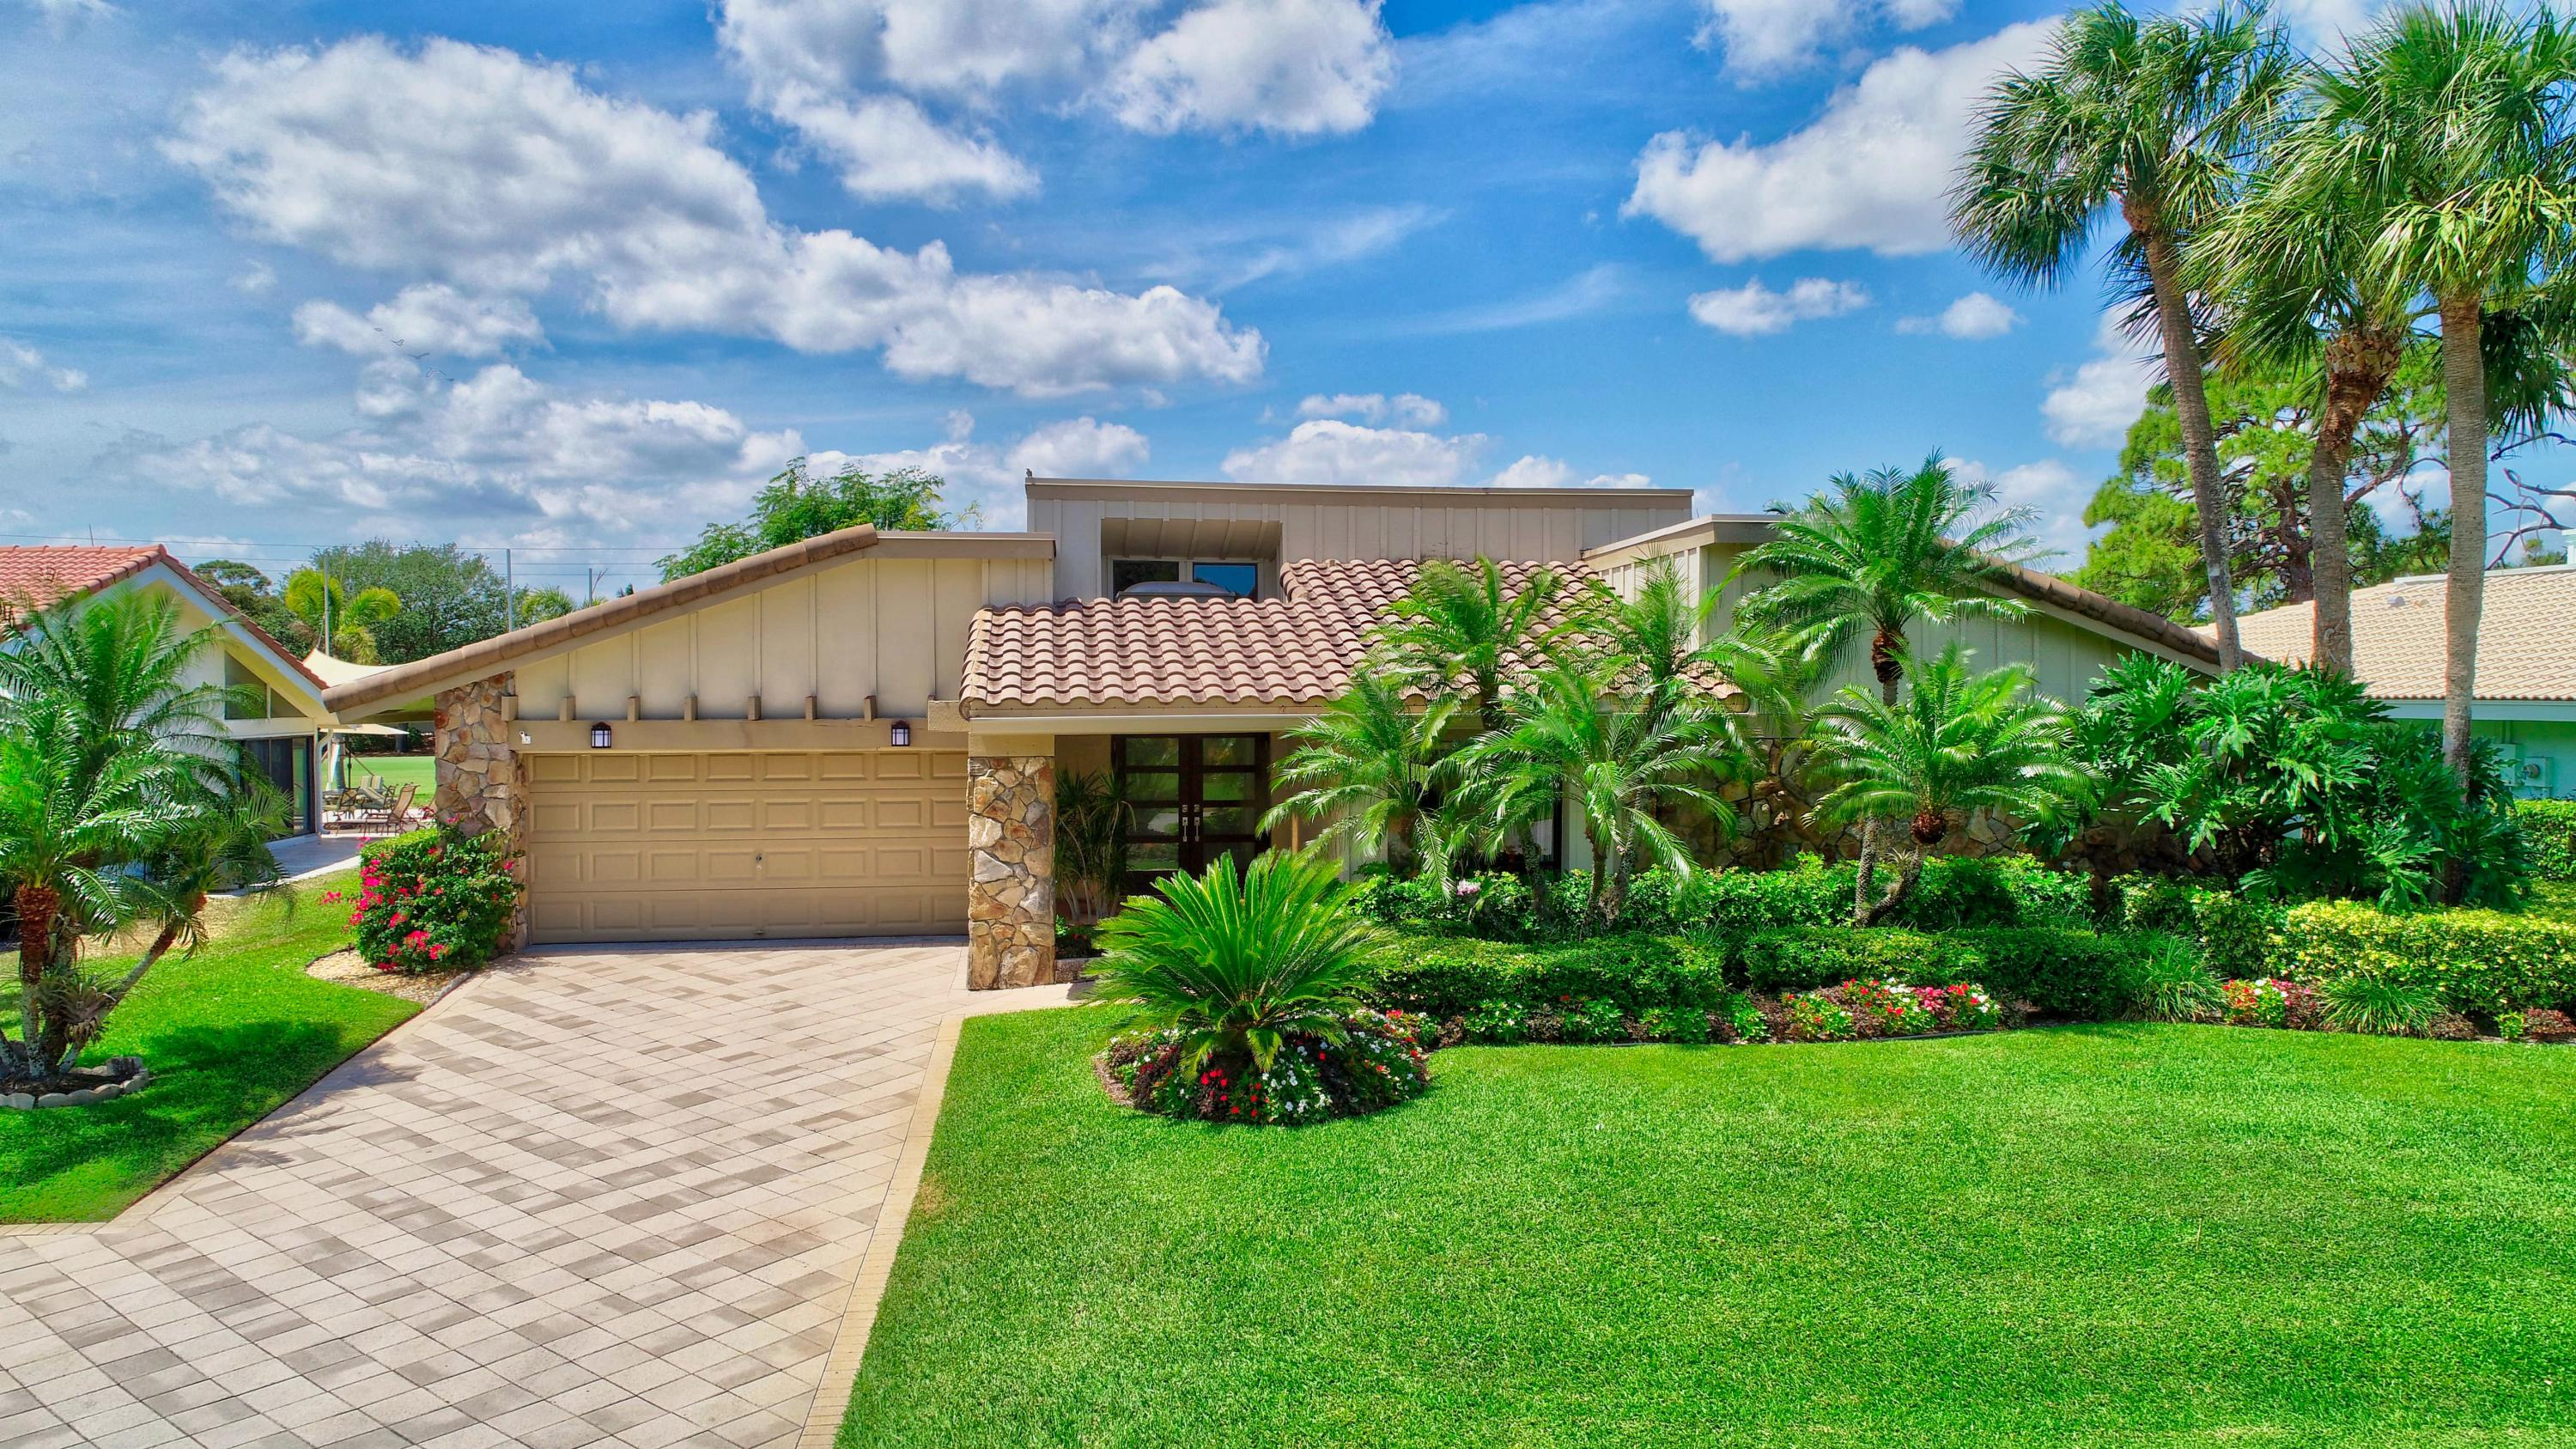 Meticulously maintained golf view home in highly sought Seagate Country Club at the Hamlet.  Open concept kitchen, dining and living space with soaring beamed ceilings, skylights and wet bar. Two master bedrooms, both ensuite, plus powder room. Convertible third bedroom is currently used as an office. Enjoy the golf view lot from screened porch and paver patio. Fenced back yard, with ample room to add pool & spa if desired. Roof replaced in 2013,  a/c 2016 & newer SS appliances.& HW heater. Front door, garage door & skylights are hurricane rated impact. Spacious FL room also under air cooled by split a/c (2020).  Rare find at this price point! Membership in Seagate CC is optional, not mandatory.  Best gated community location for access to downtown, beach, I-95, etc!